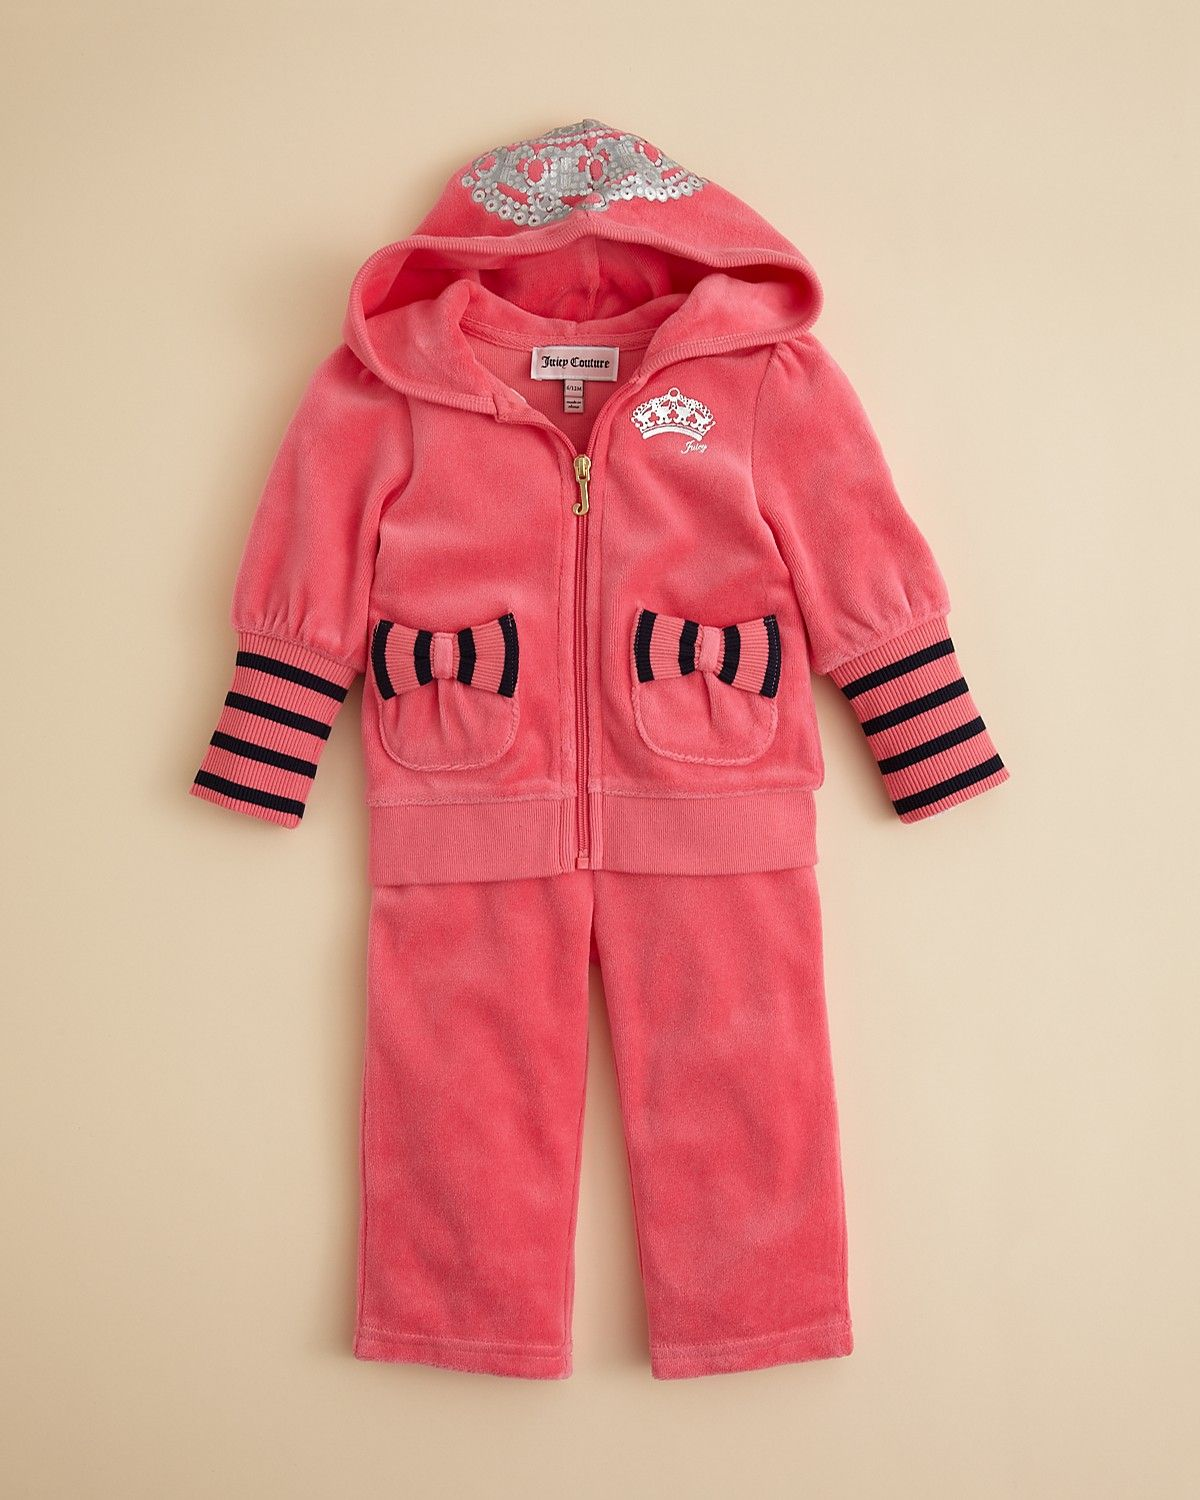 Juicy Couture Girls' Hooded Tiara Print Hoodie & Pants - Sizes 3-24 Months | Bloomingdale's